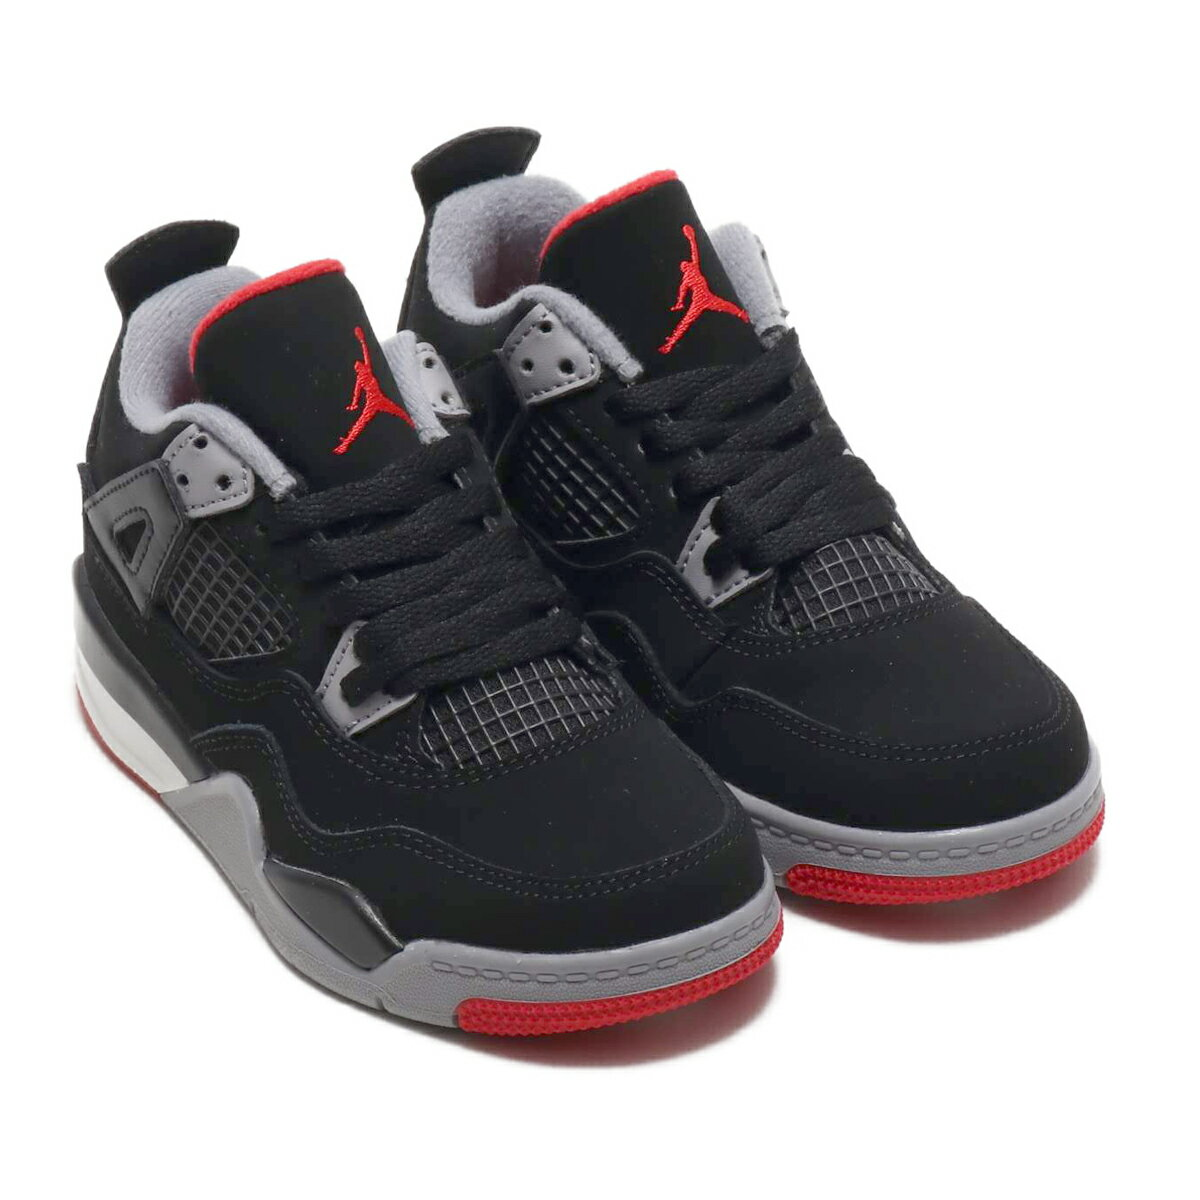 NIKE JORDAN 4 RETRO (PS)ナイキ ジョーダン 4 レトロ PS)BLACK/FR RED-CMNT GRY-SMMT WHT【キッズ スニーカー】19SU-S